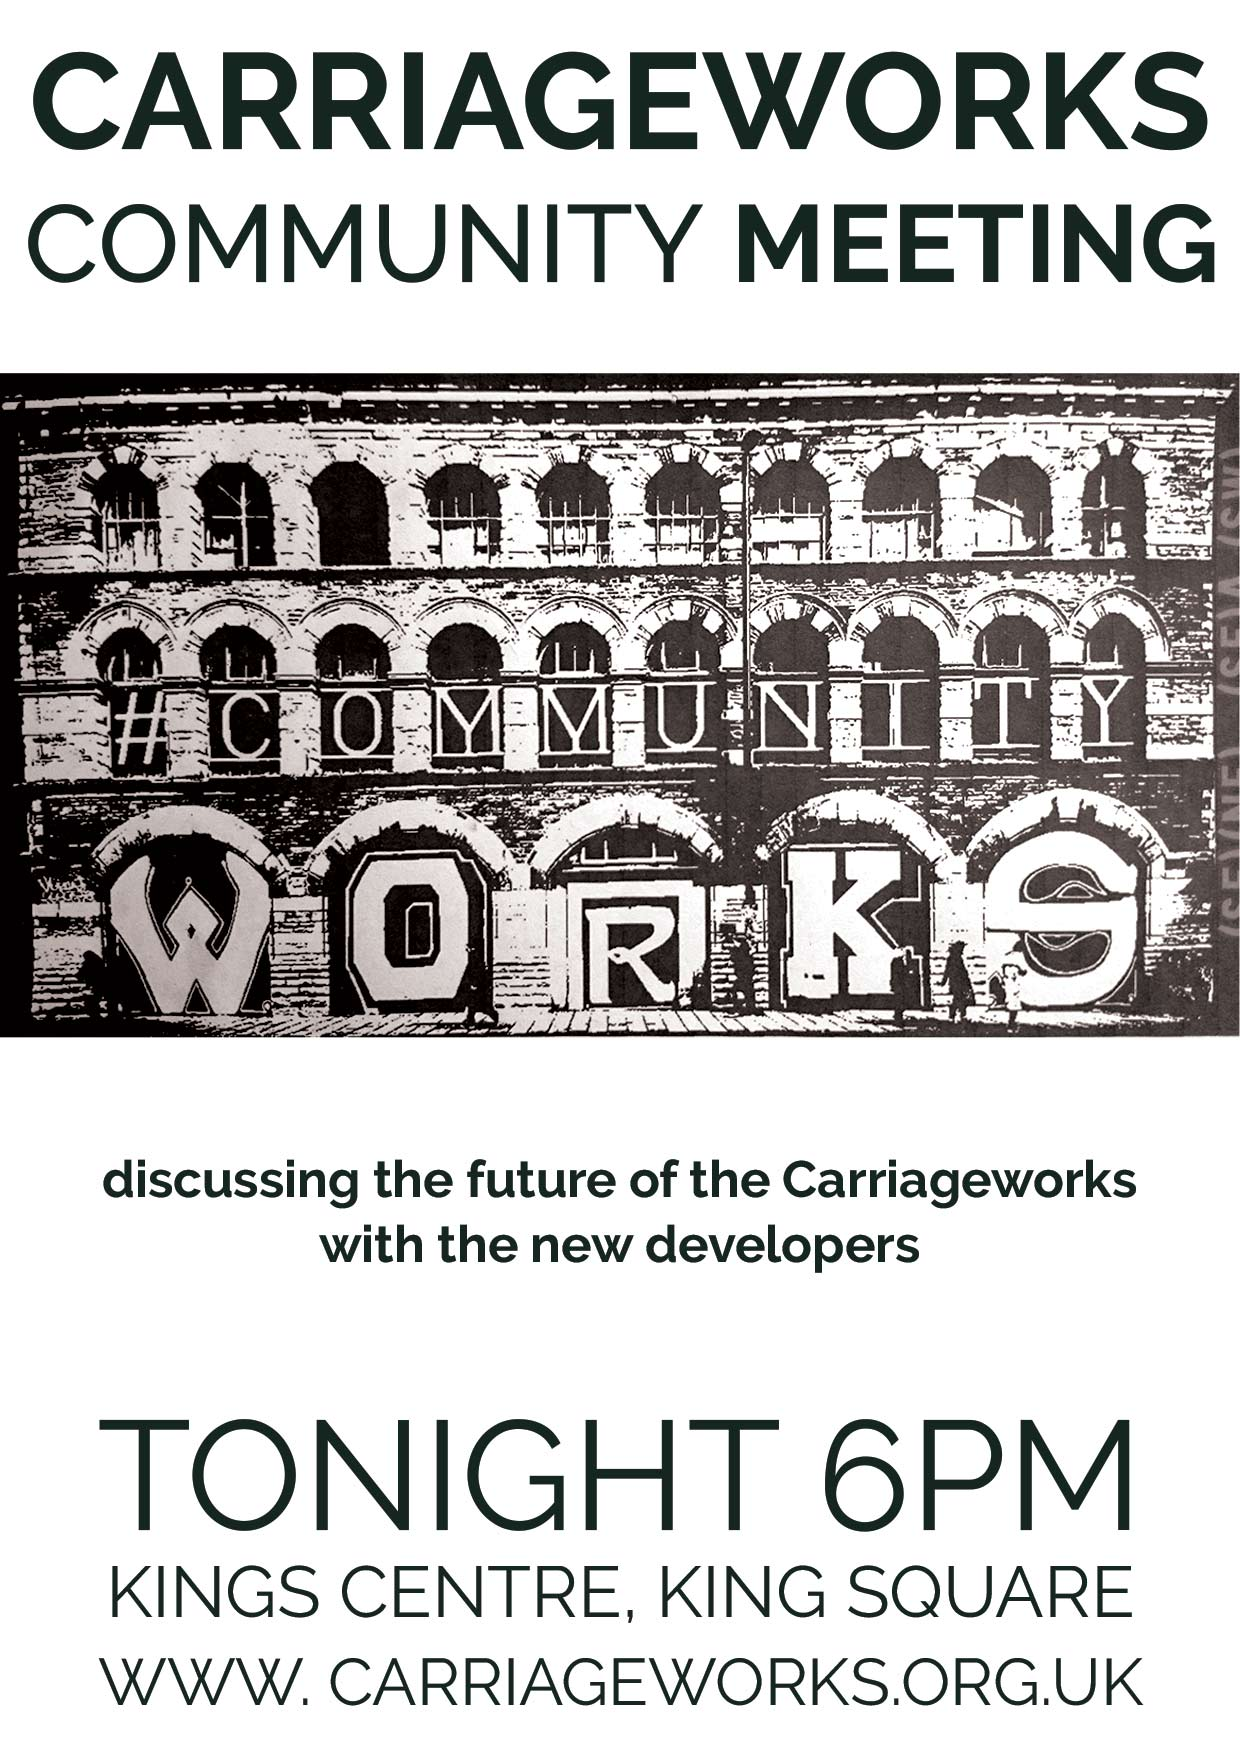 Carriageworks community meeting